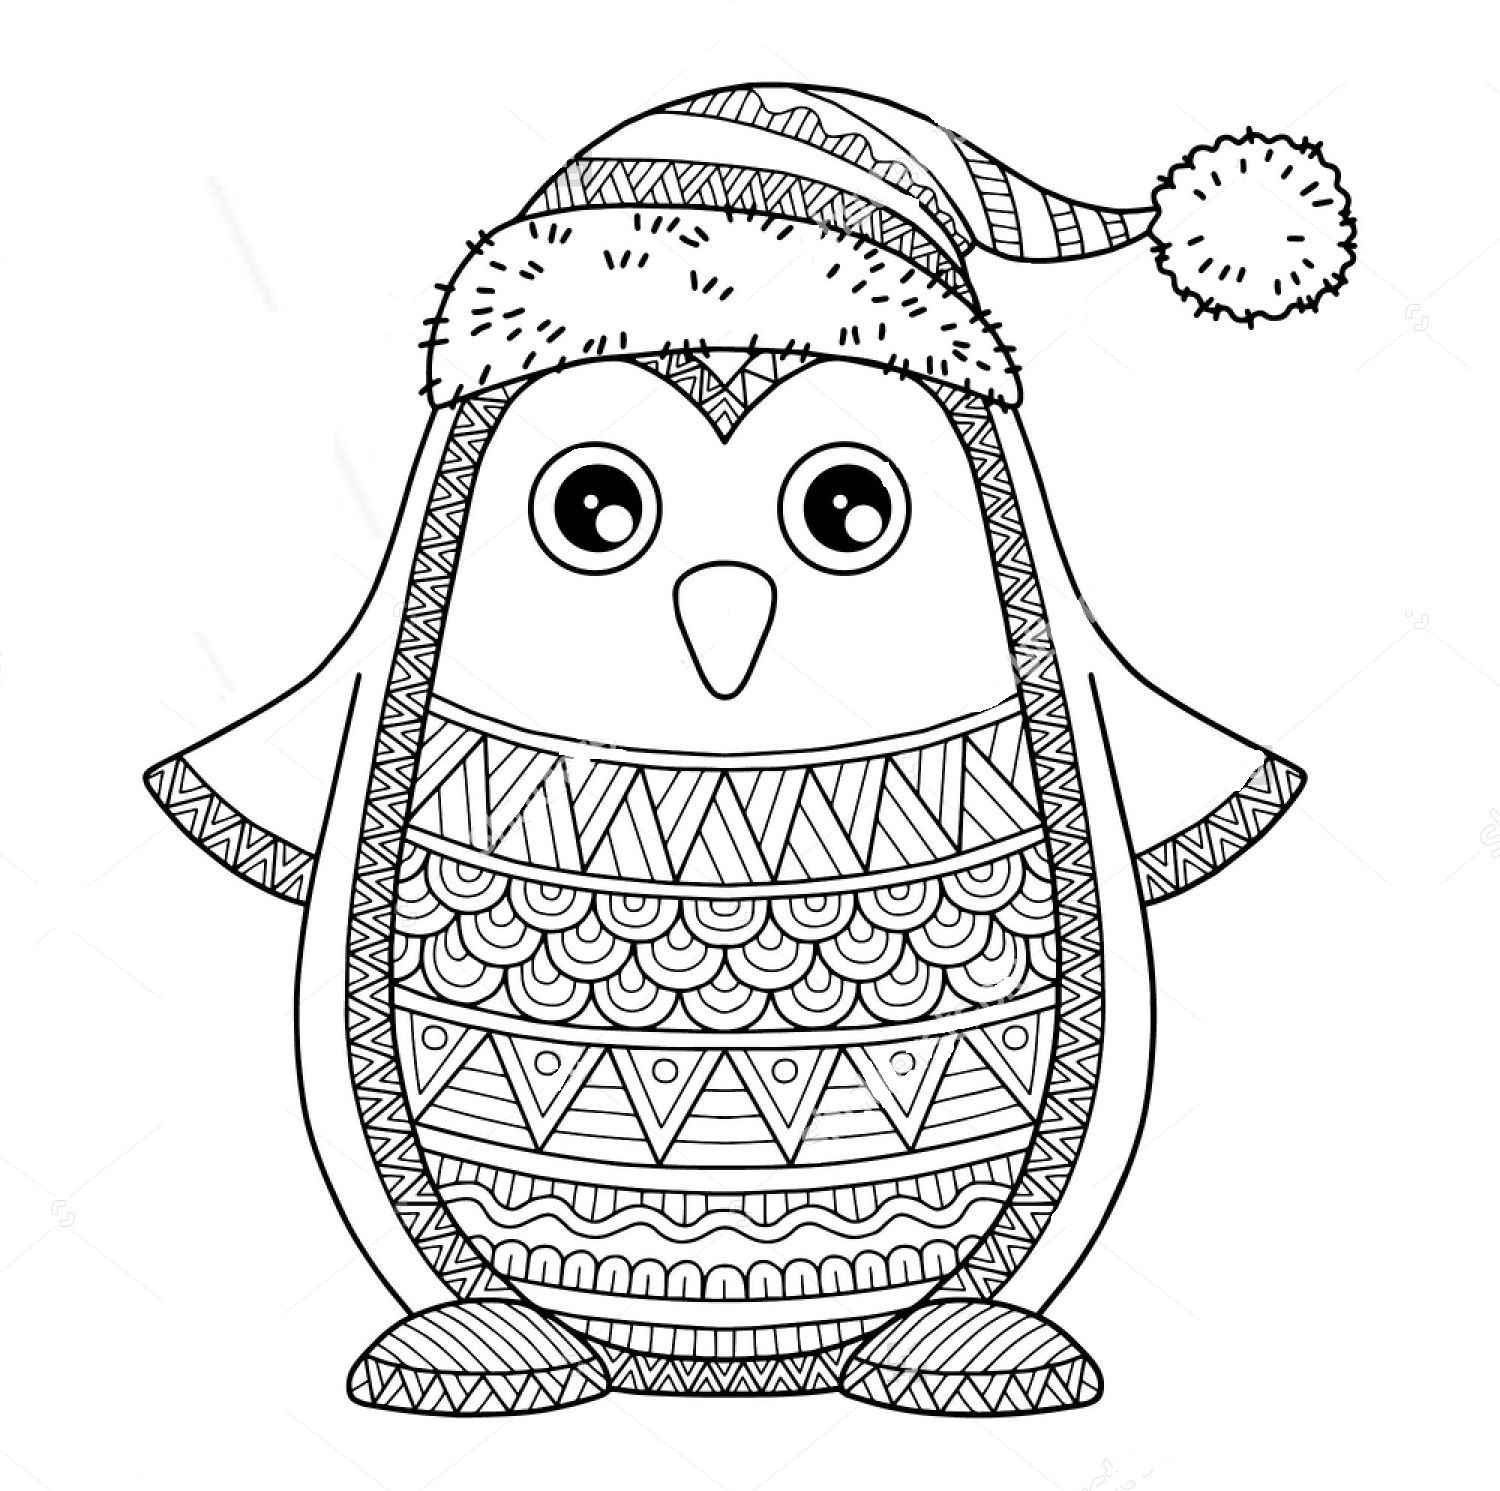 Christmas Zentangle Coloring Page Coloring Pages Winter Coloring Pages Cat Coloring Page